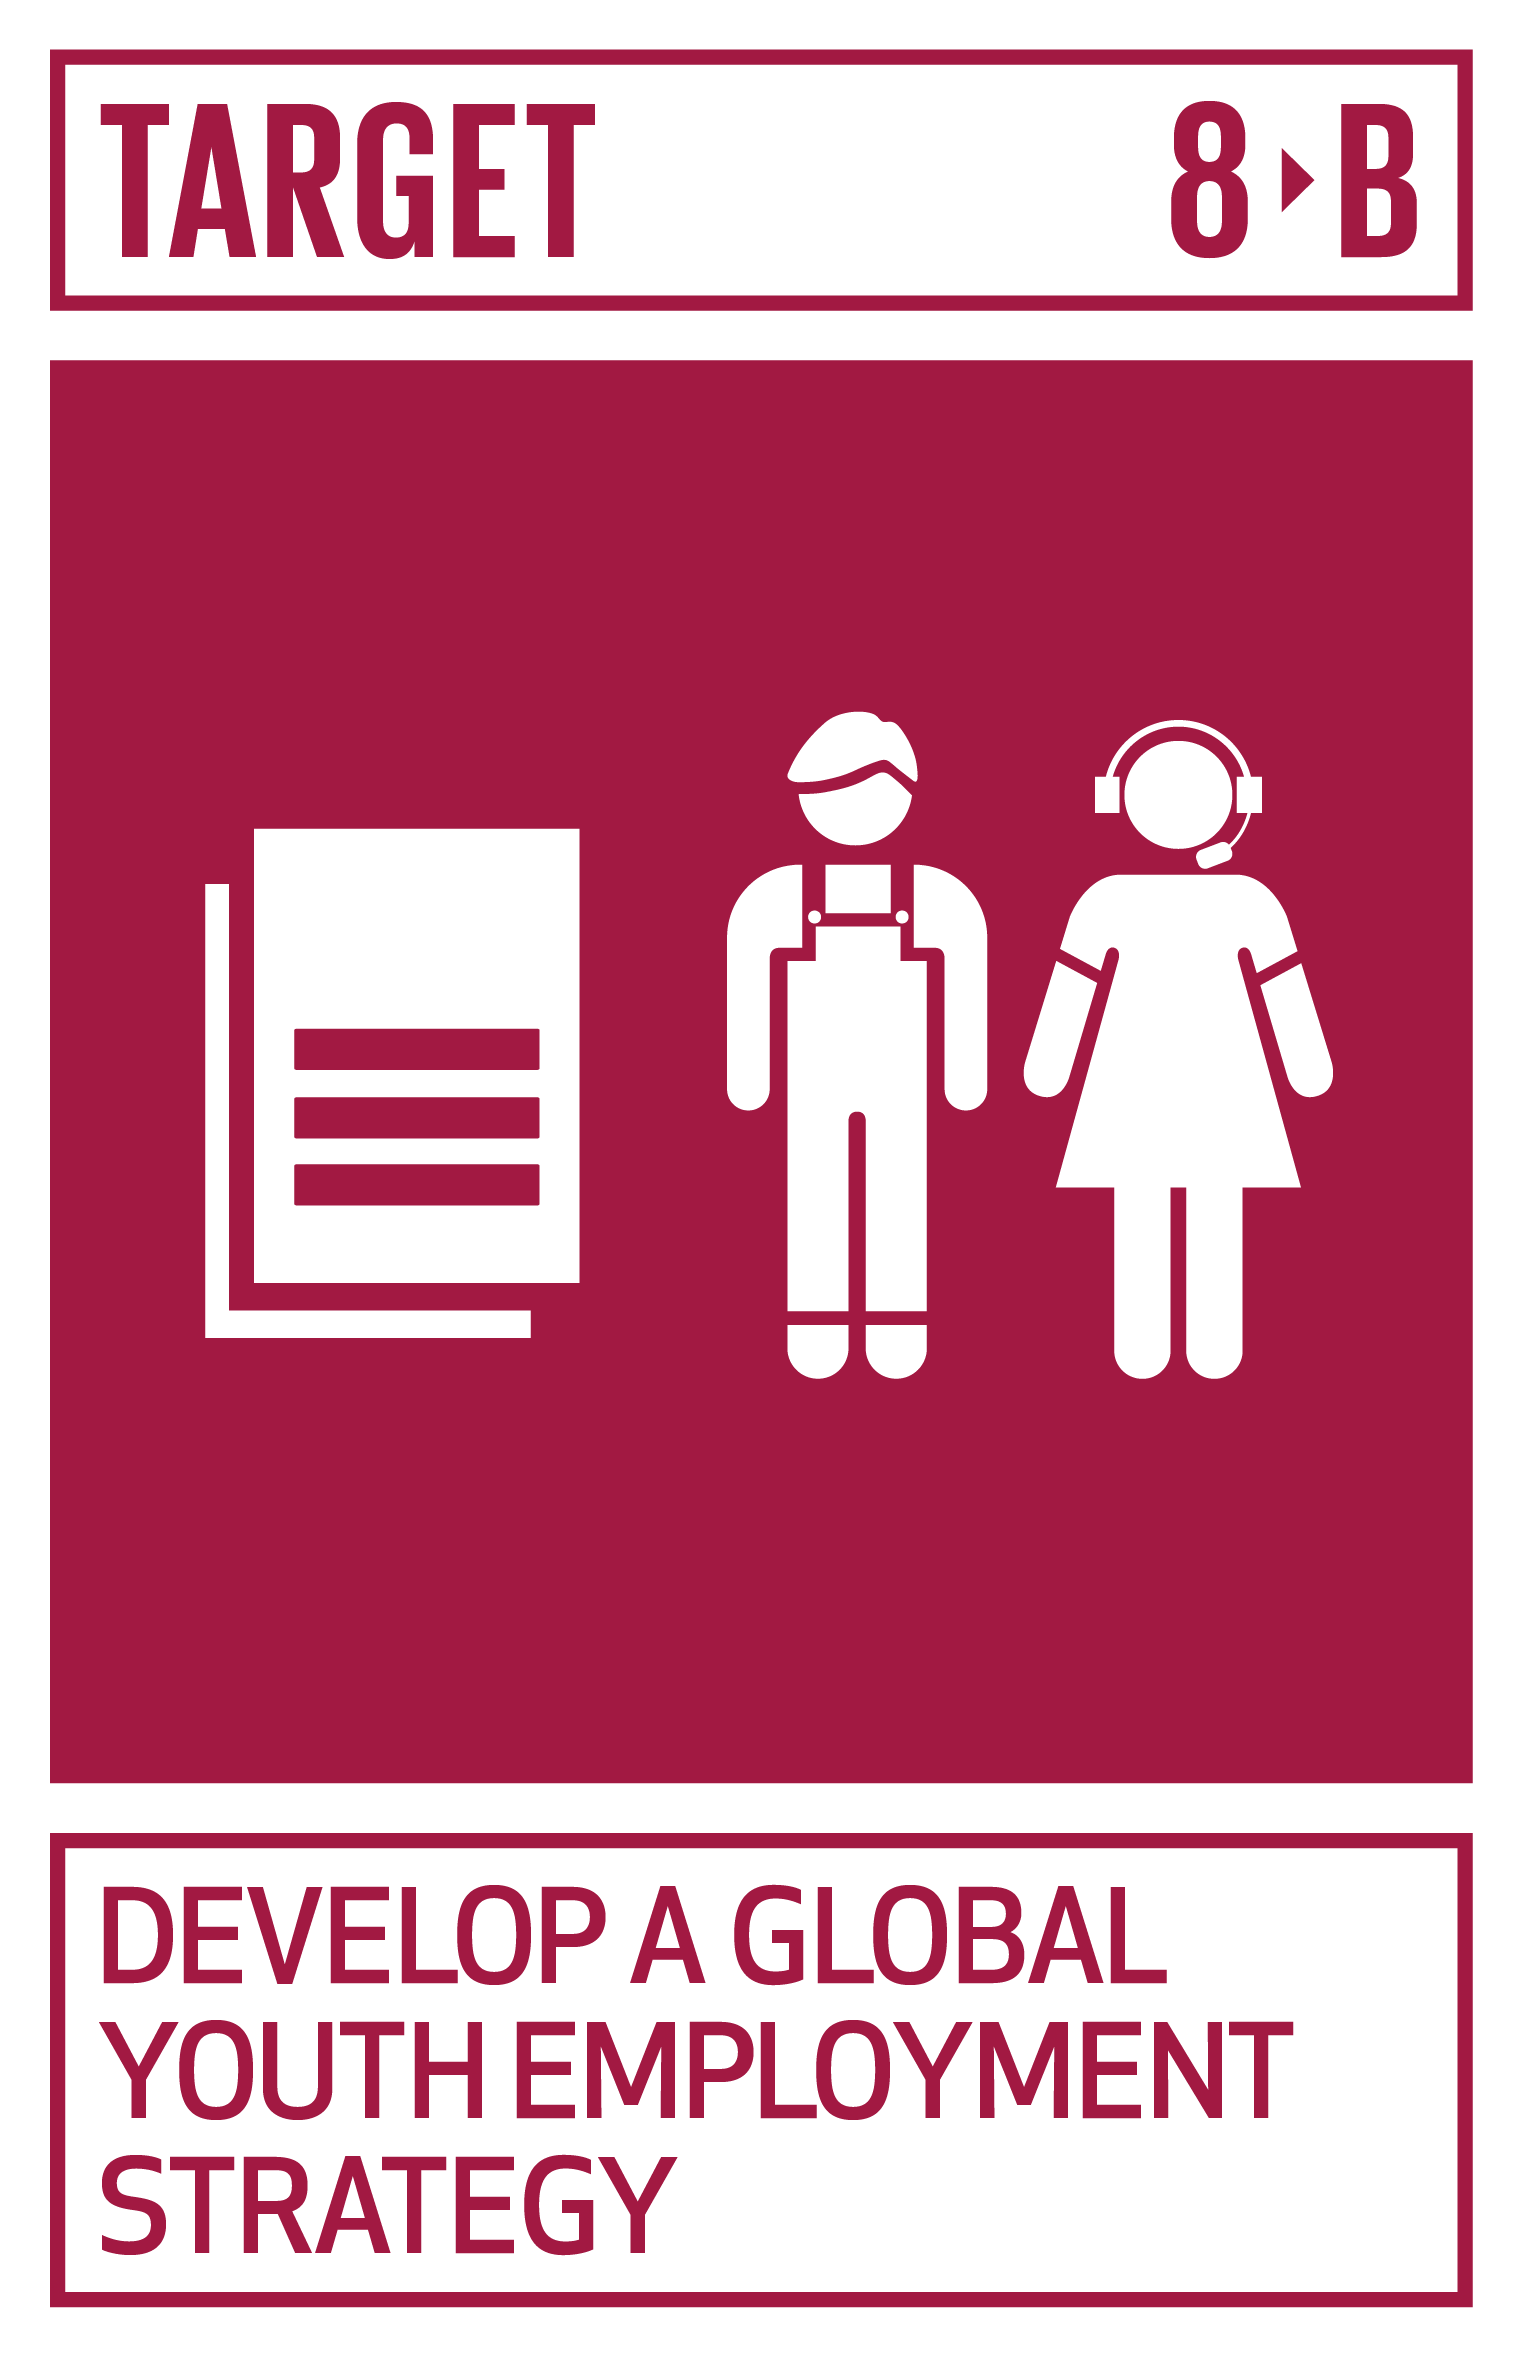 By 2020, develop and operationalize a global strategy for youth employment and implement the Global Jobs Pact of the International Labour Organization.   INDICATOR    8.b.1  Existence of a developed and operationalized national strategy for youth employment, as a distinct strategy or as part of a national employment strategy